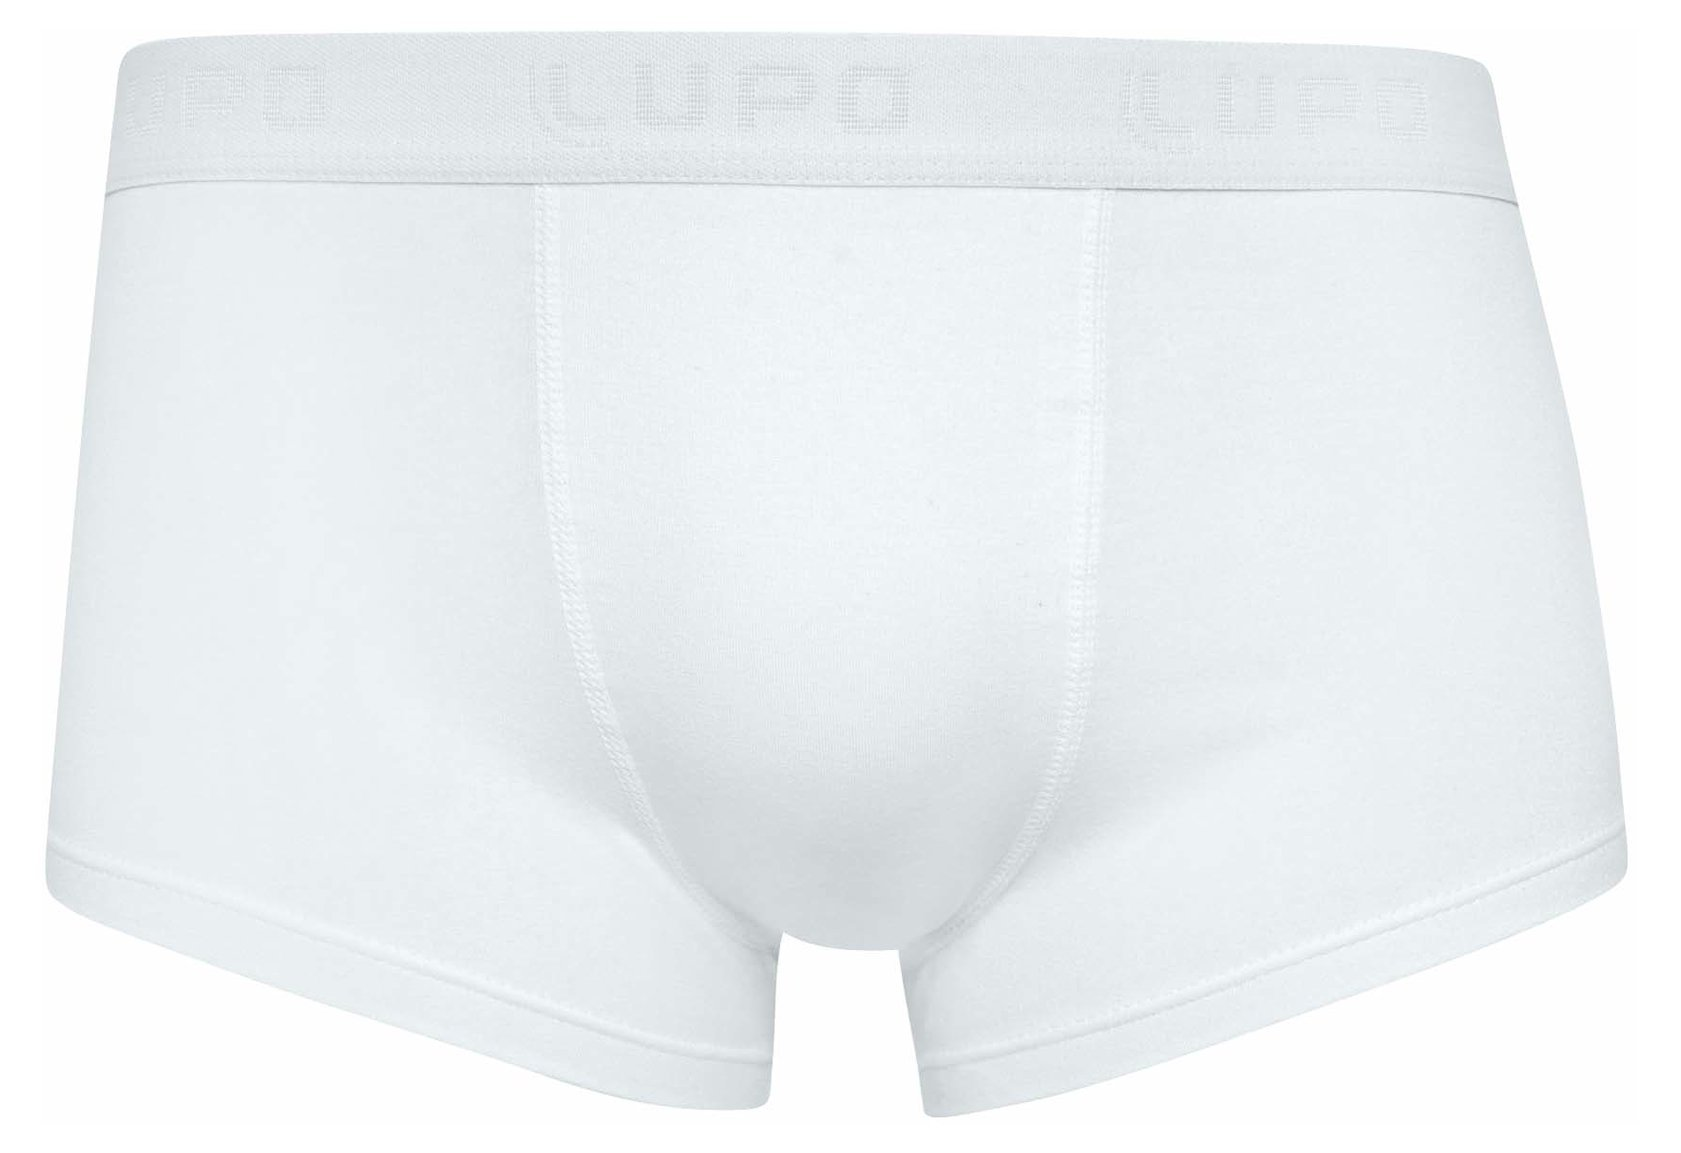 Lupo Men's Essential Stretch Cotton Low Rise Trunk Underwear (Pack of 3), White, Large by Lupo